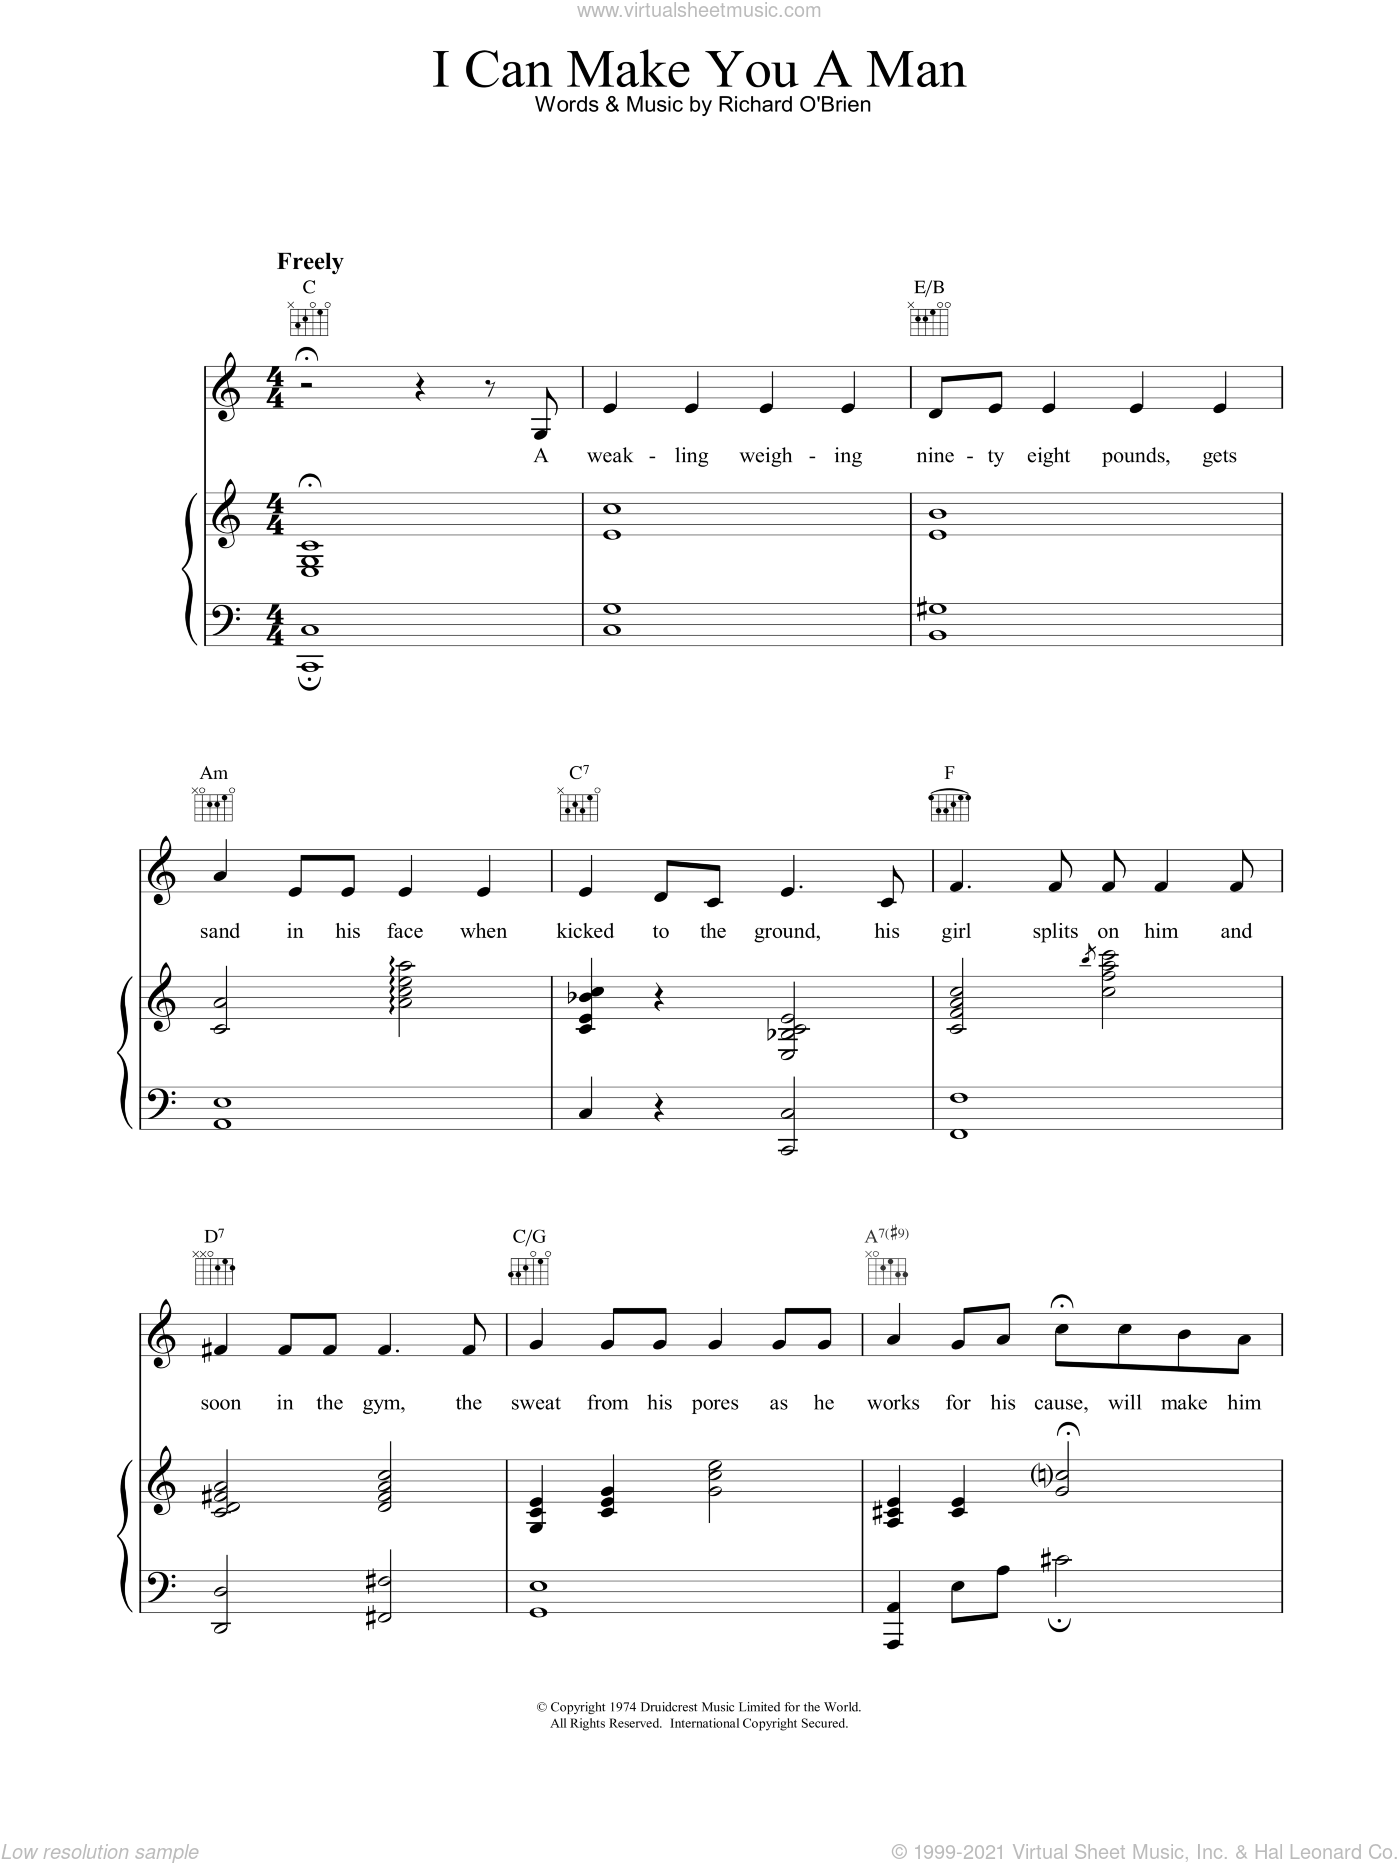 I Can Make You A Man sheet music for voice, piano or guitar by Richard O'Brien. Score Image Preview.